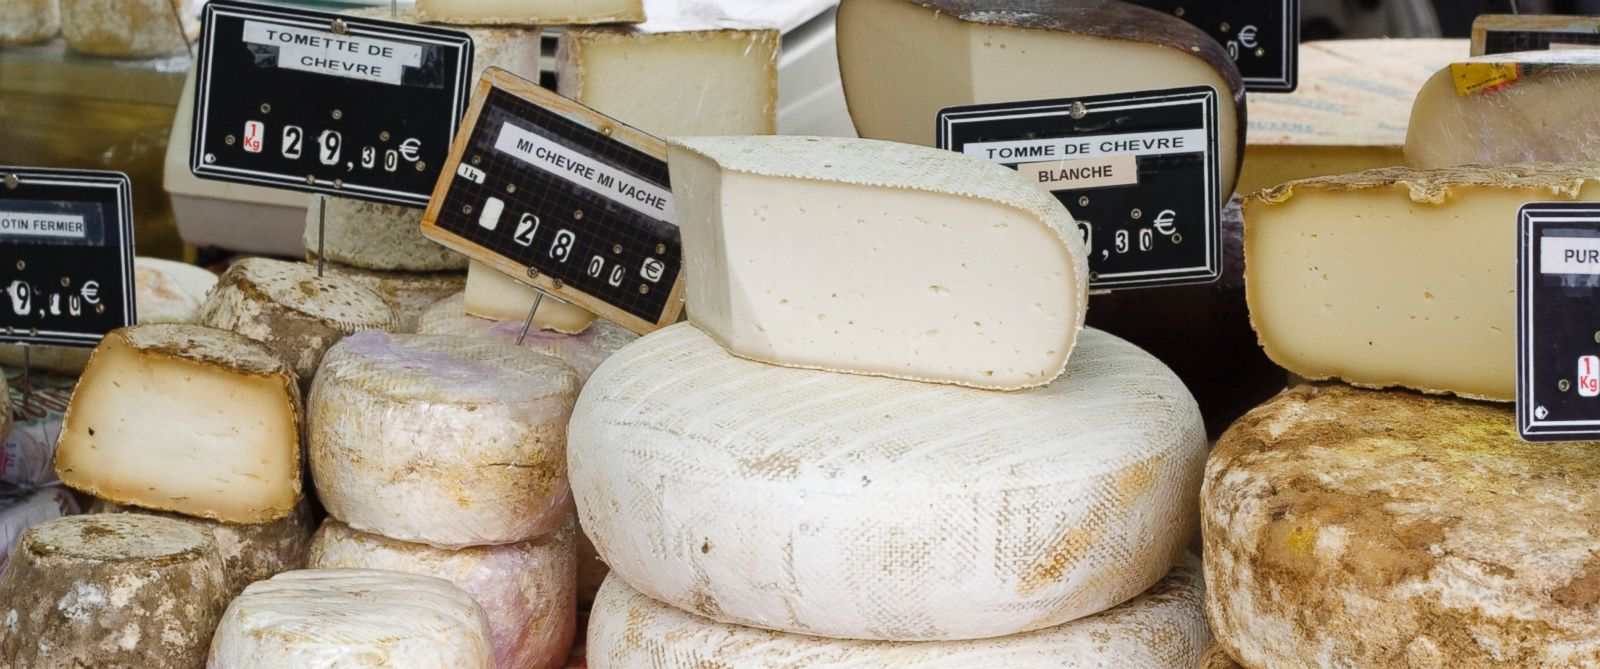 PHOTO: This undated photo shows a stack of French cheese for sale at a farmers market.